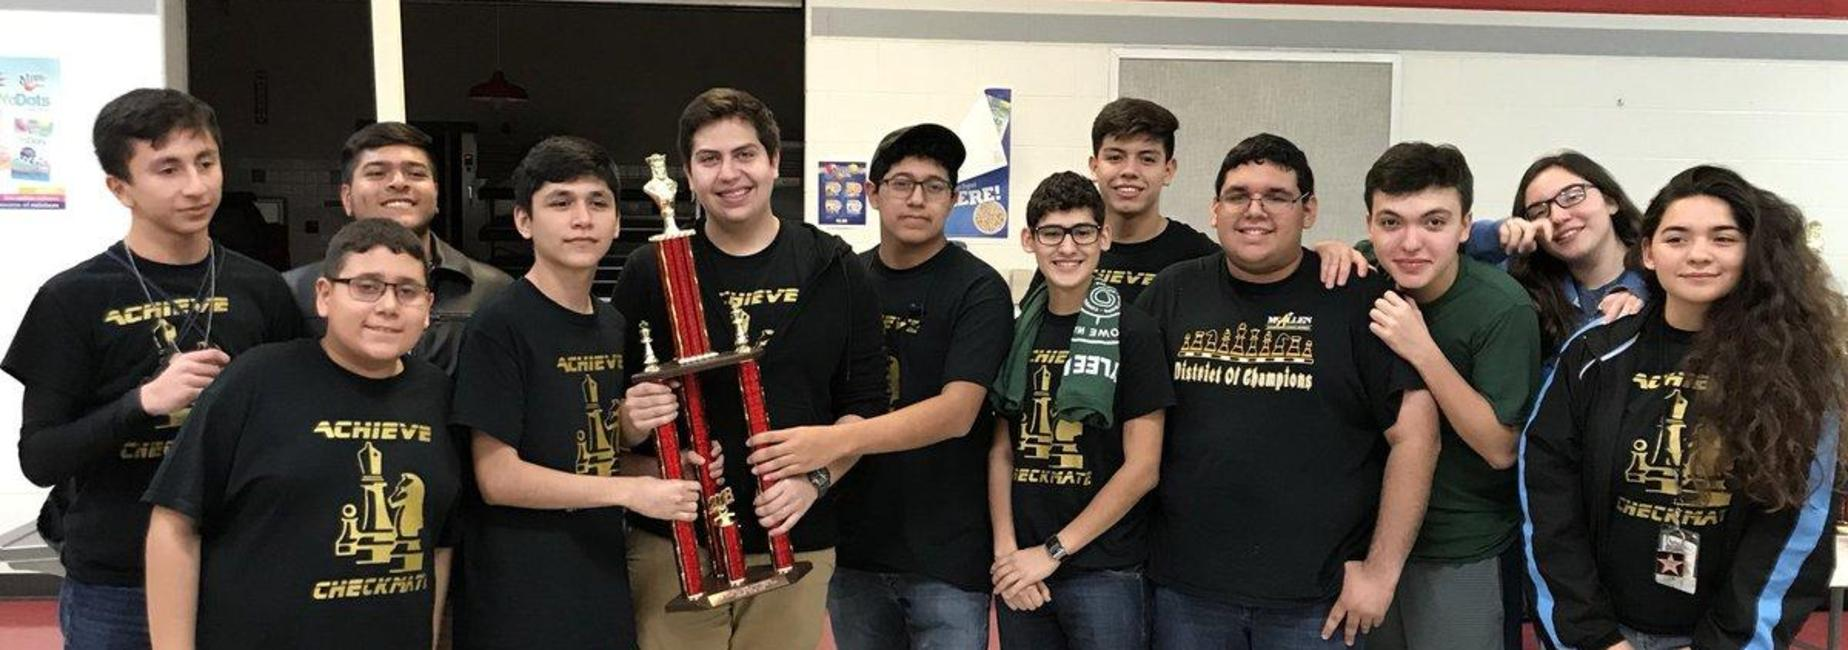 AECHS Chess team with Championship trophy